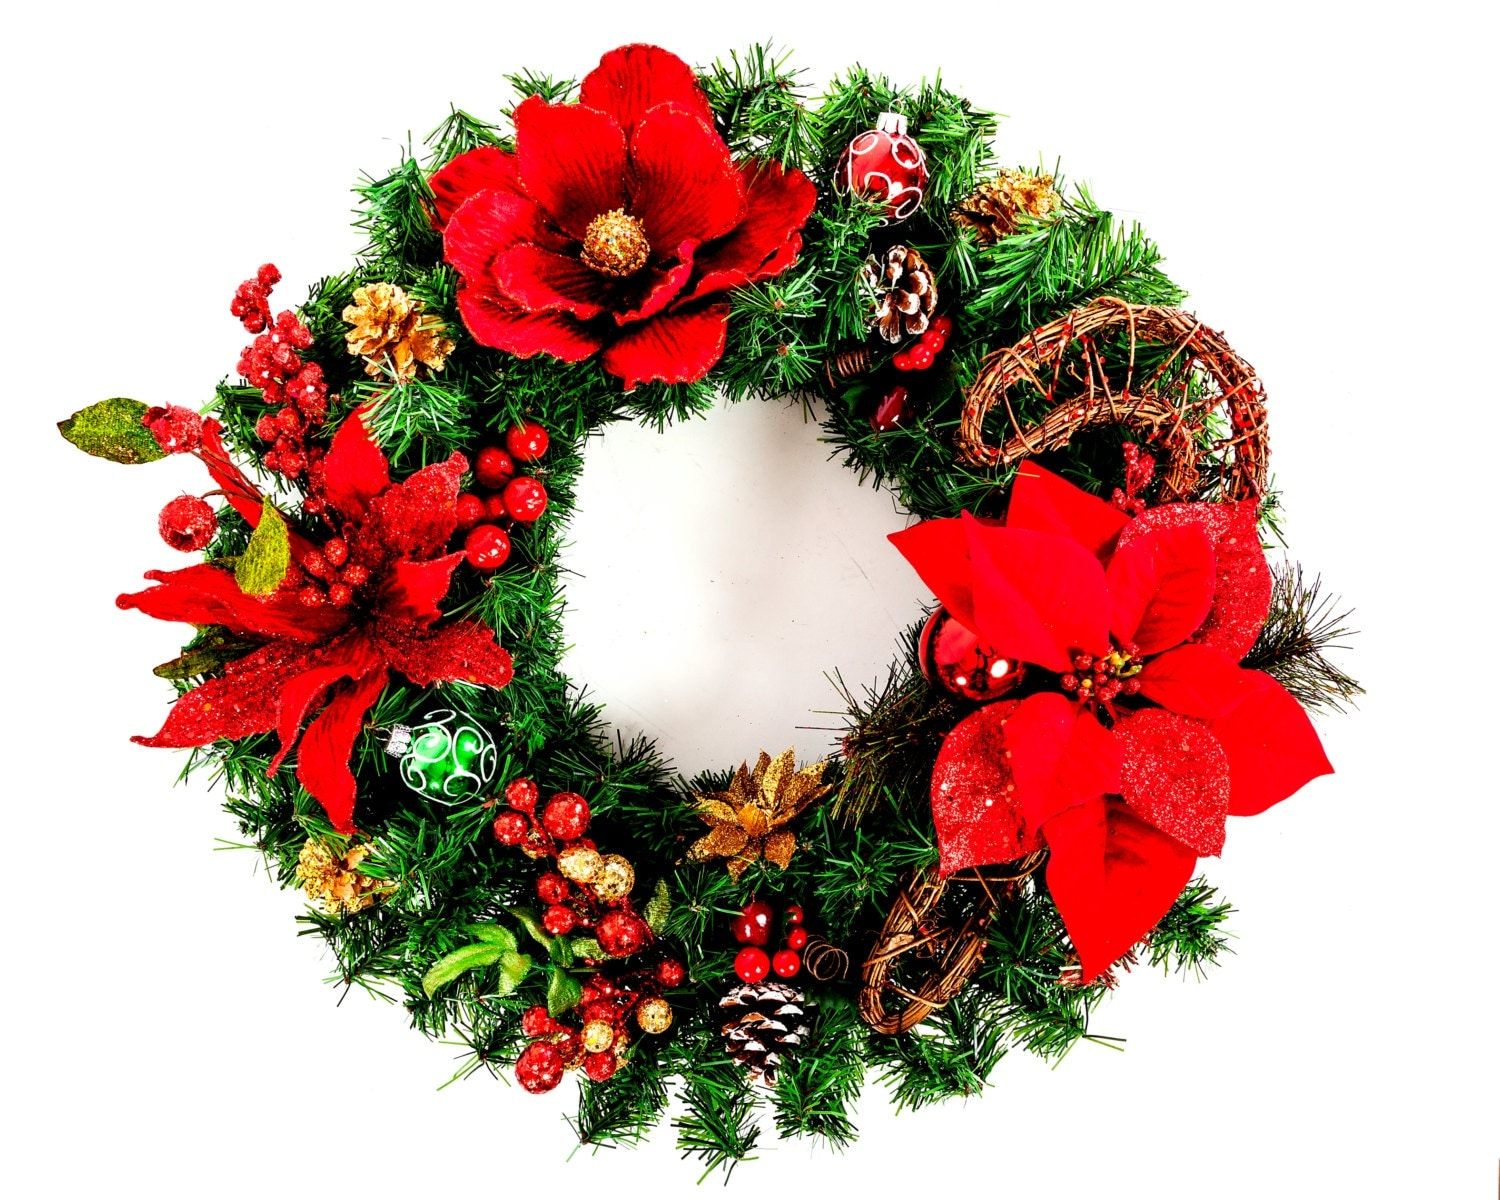 Candy Cane Christmas Wreath - Silk Floral Arrangement